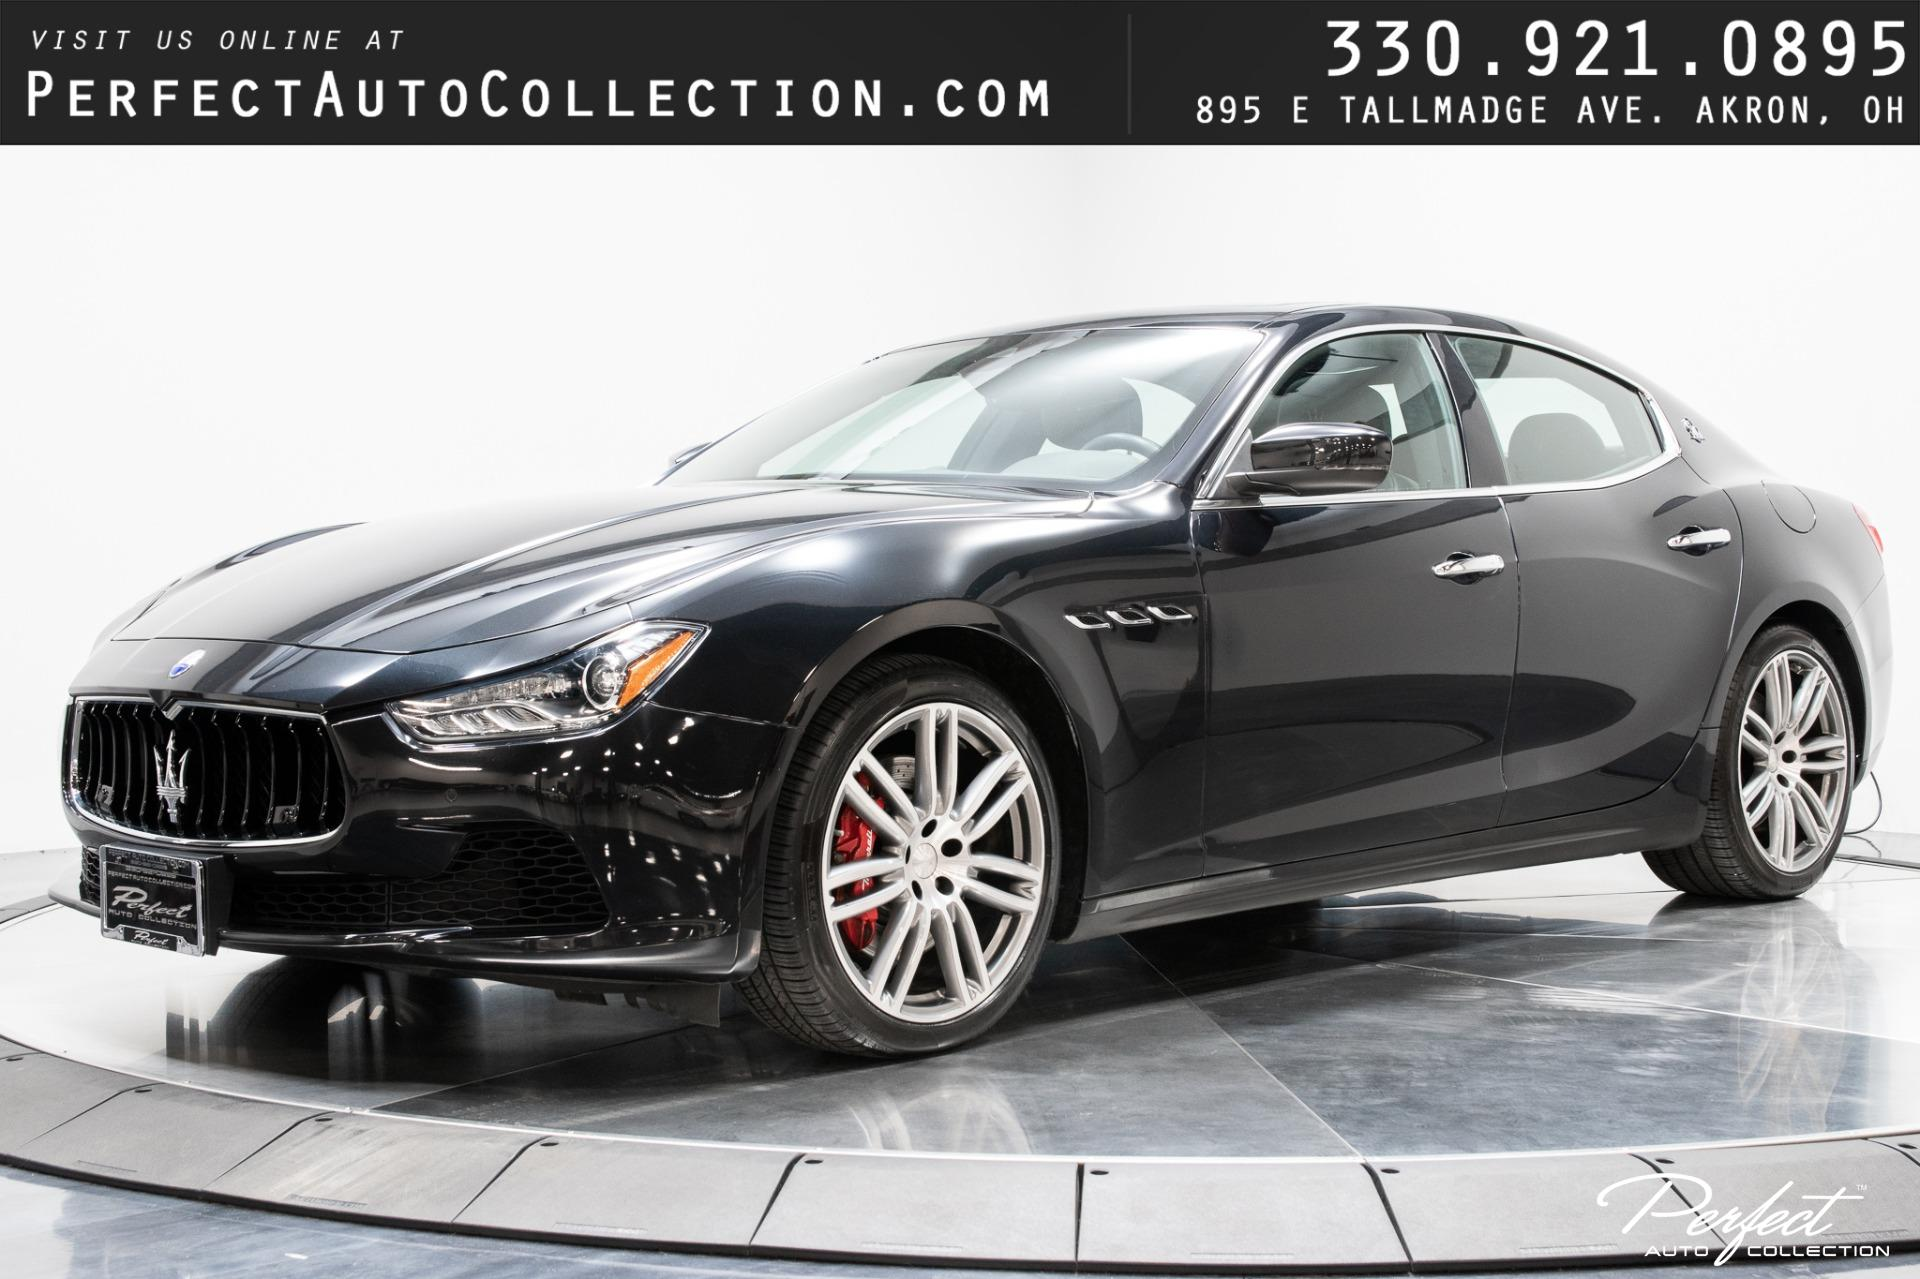 Used 2017 Maserati Ghibli S Q4 for sale $38,495 at Perfect Auto Collection in Akron OH 44310 1